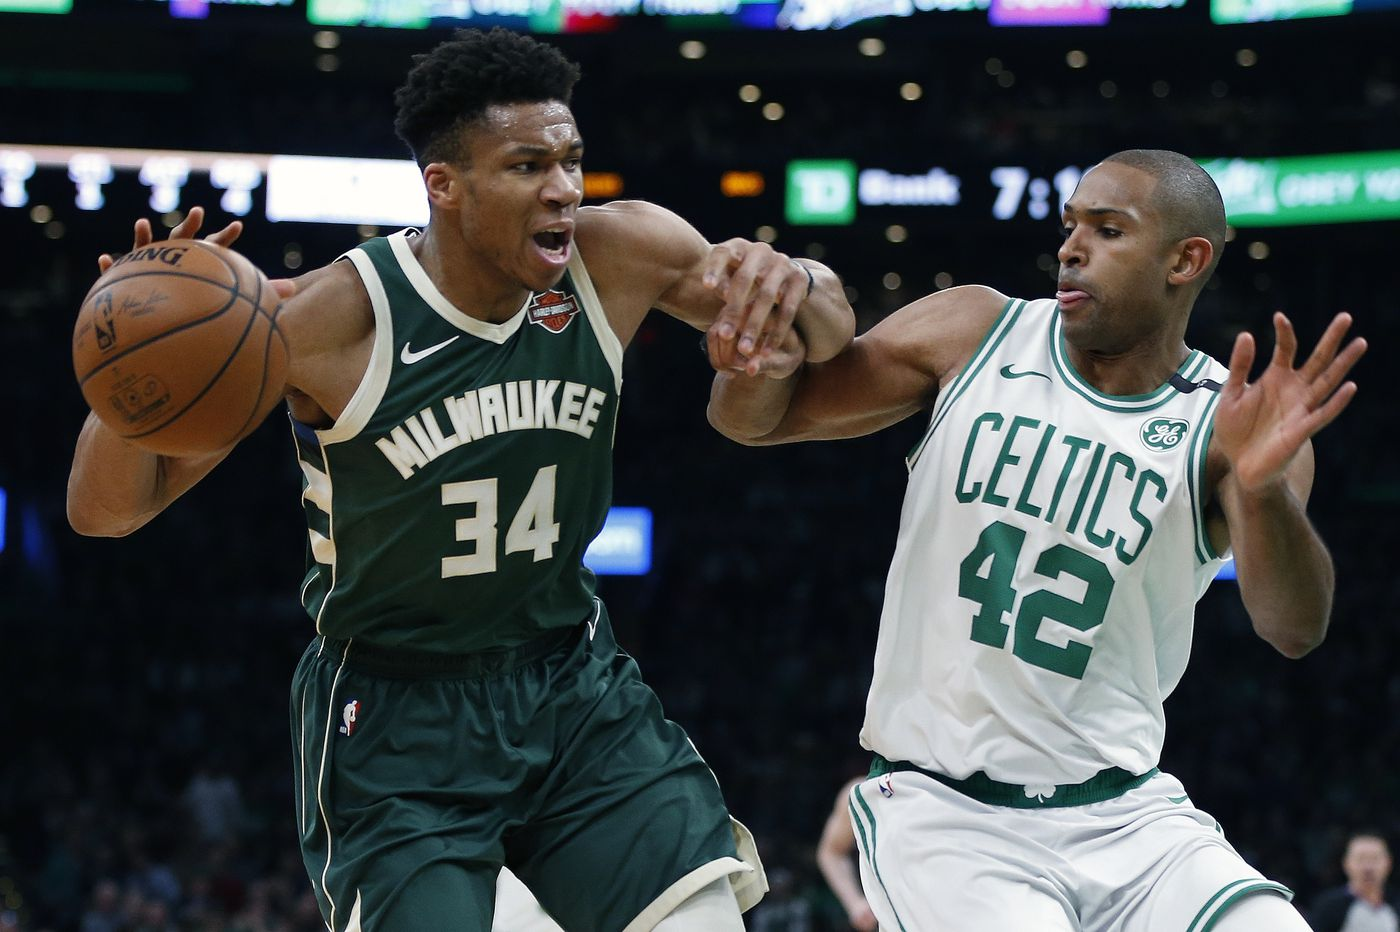 Game 5 Preview: Celtics at Bucks